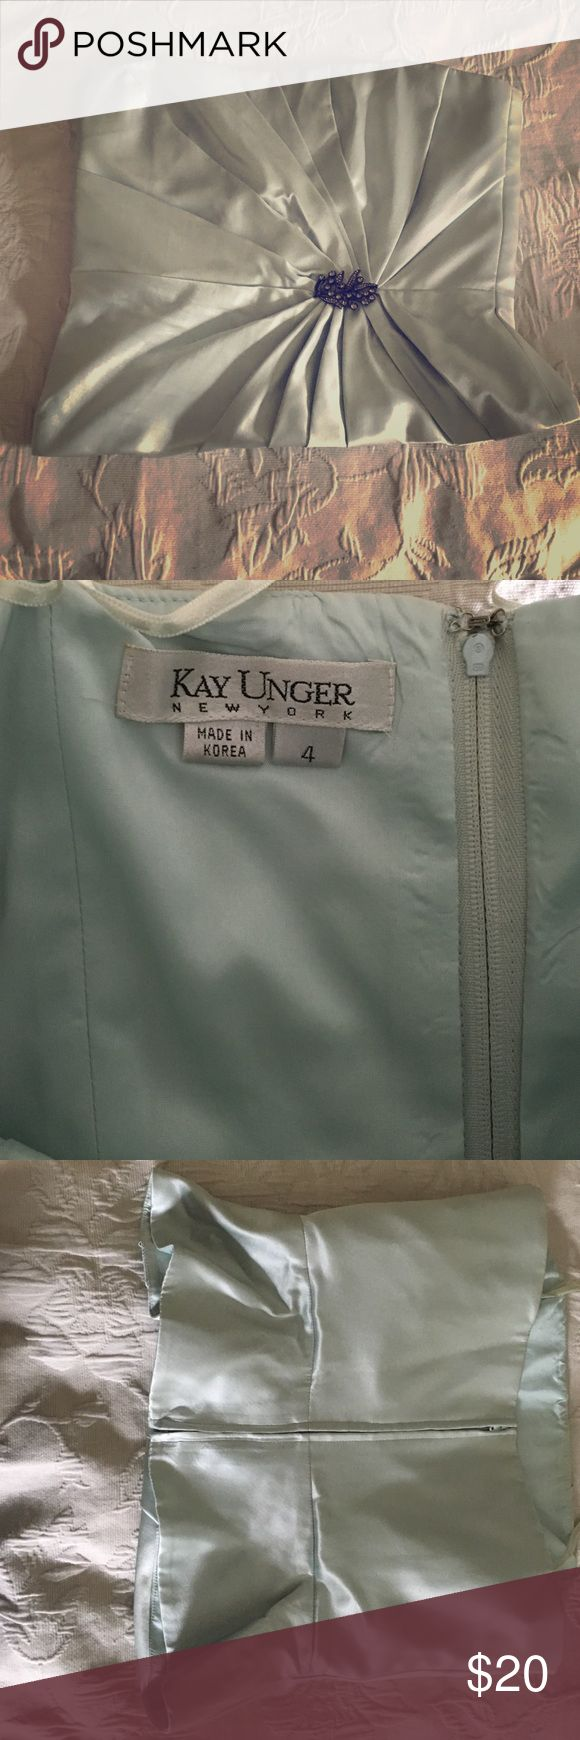 Elegant Kay Unger strapless satin top, Size 4, gorgeous light blue/Aqua/silver top with black dress pants or high waisted skirt, bodice fit, one small mark on back mid right side, EUC. Gorgeous top with jeweled brooch! Kay Unger Tops Tank Tops